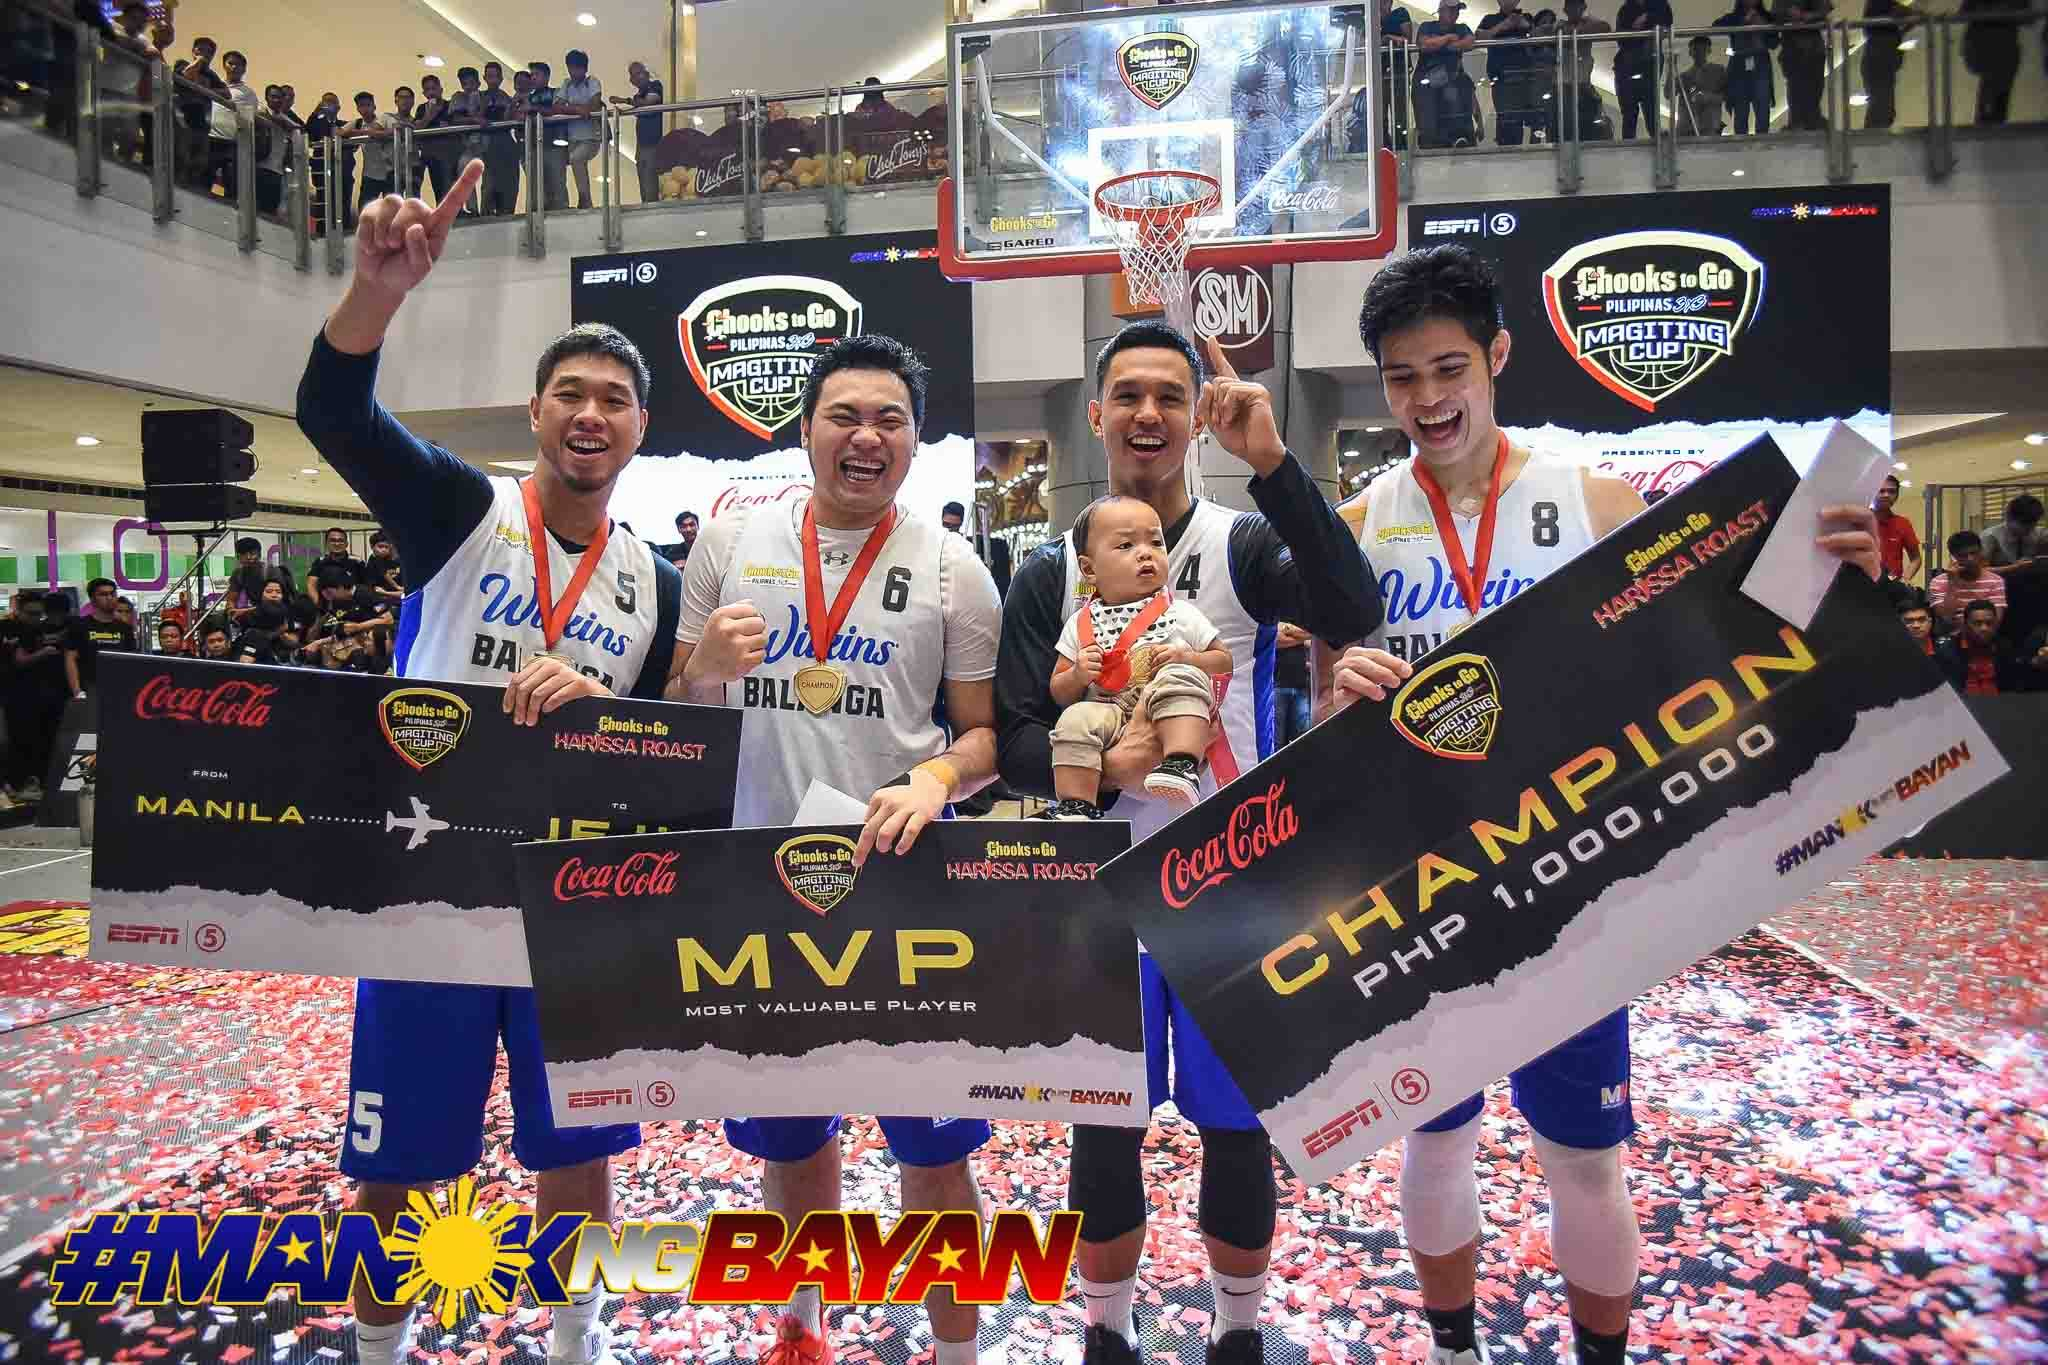 2019-Chooks-to-Go-Magiting-Cup-Balanga-Pure Best of 2020: Munzon, Pasaol, Rike, and Santillan close Chooks 3x3's first chapter 3x3 Basketball Bandwagon Wire Chooks-to-Go Pilipinas 3x3  - philippine sports news